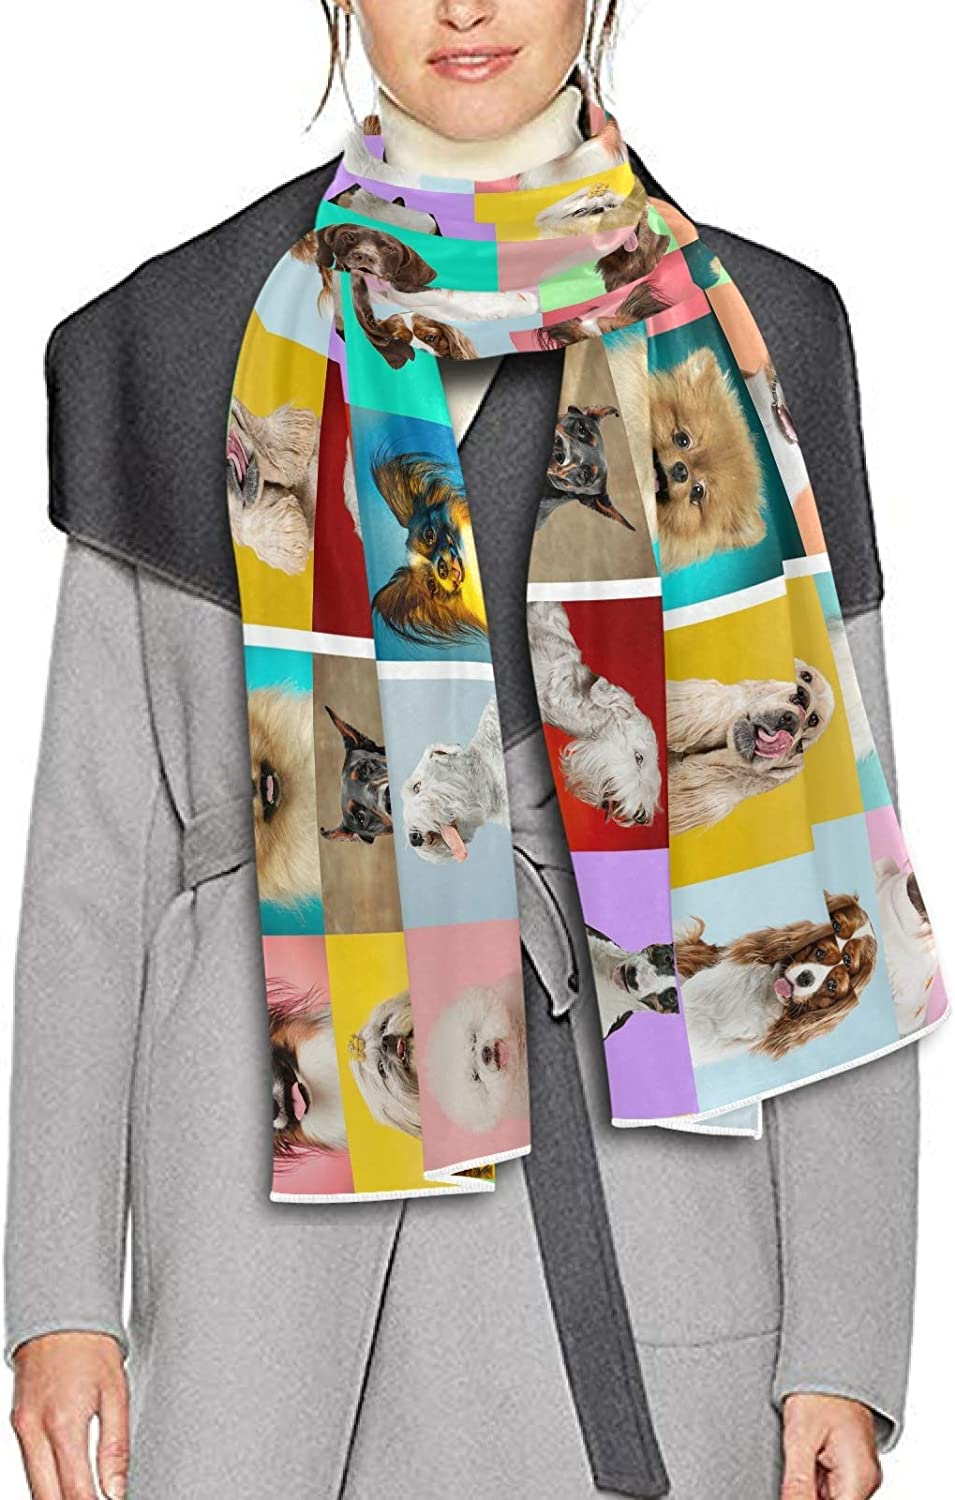 Scarf for Women and Men Cute Doggies Or Pets Are Happy Blanket Shawl Scarves Wraps Soft Winter Large Scarves Lightweight